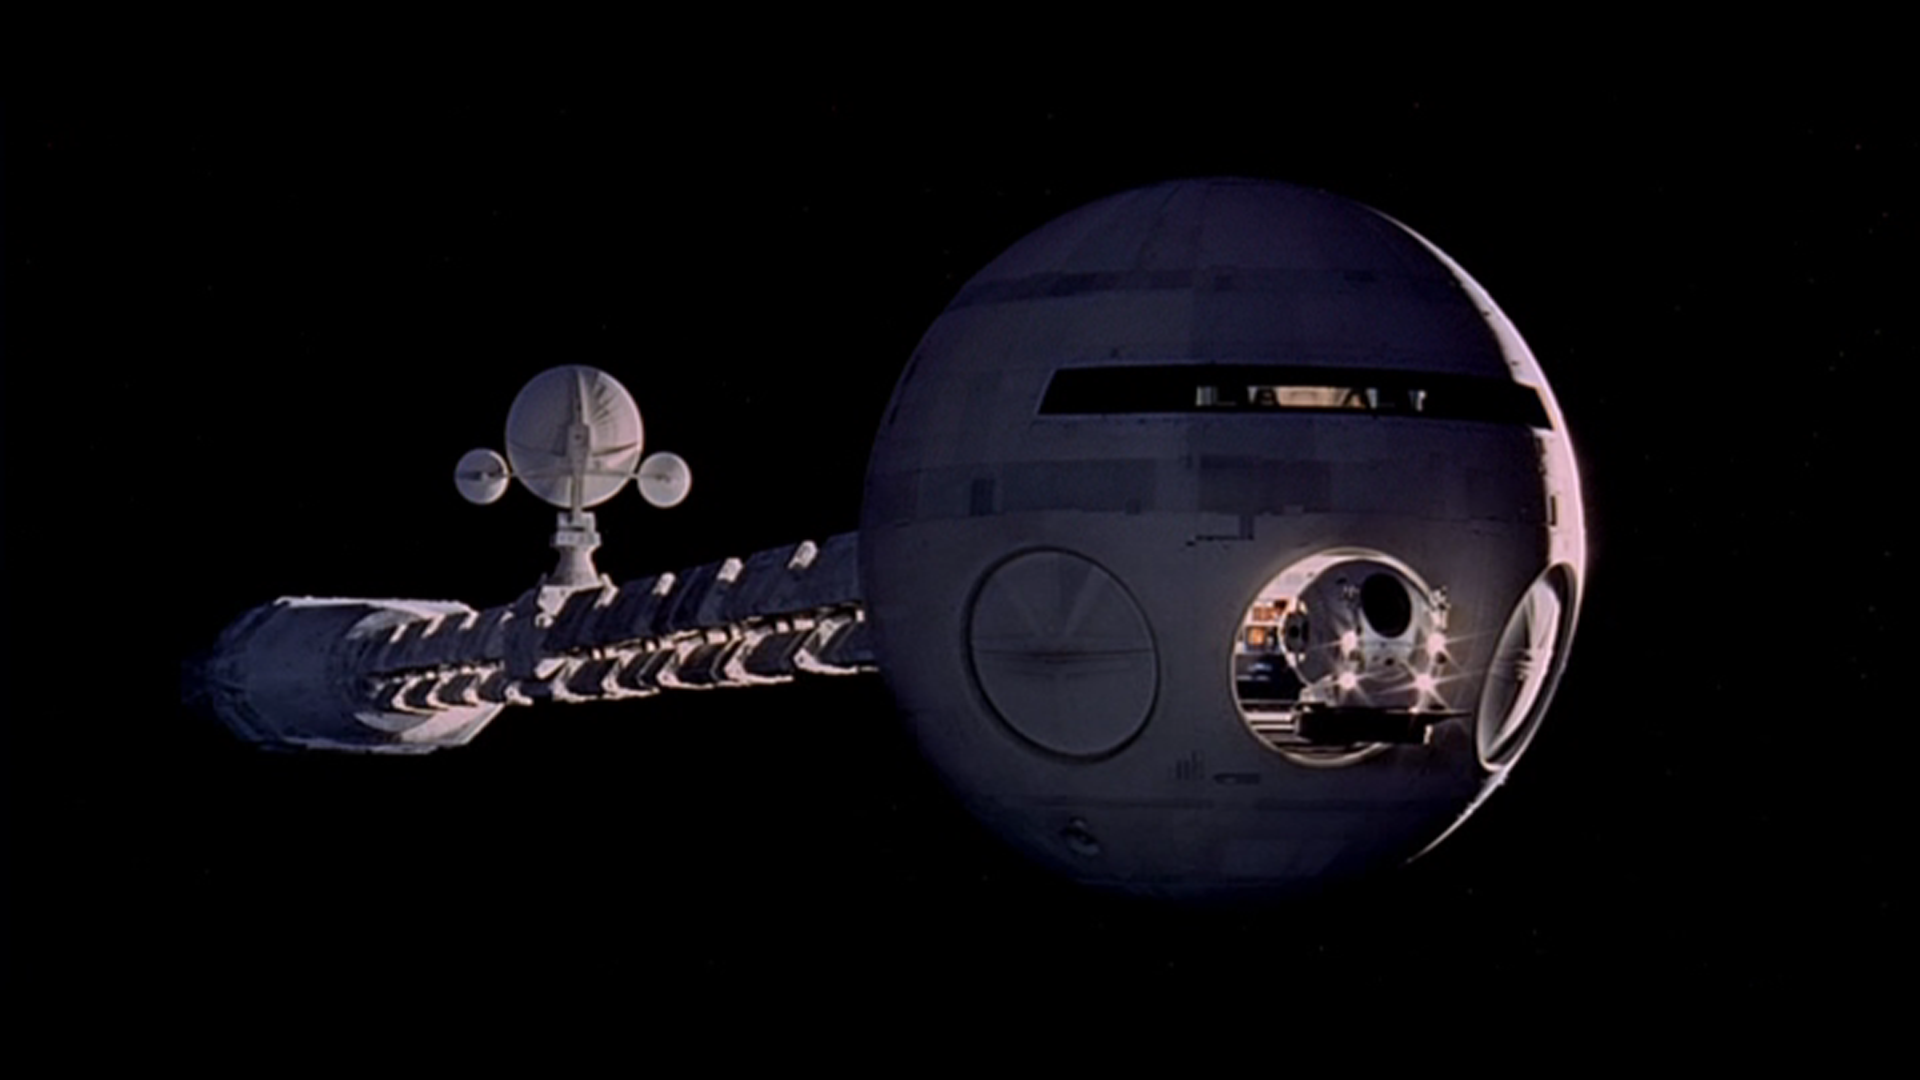 2001 a space odyssey discovery wallpaper 1159809